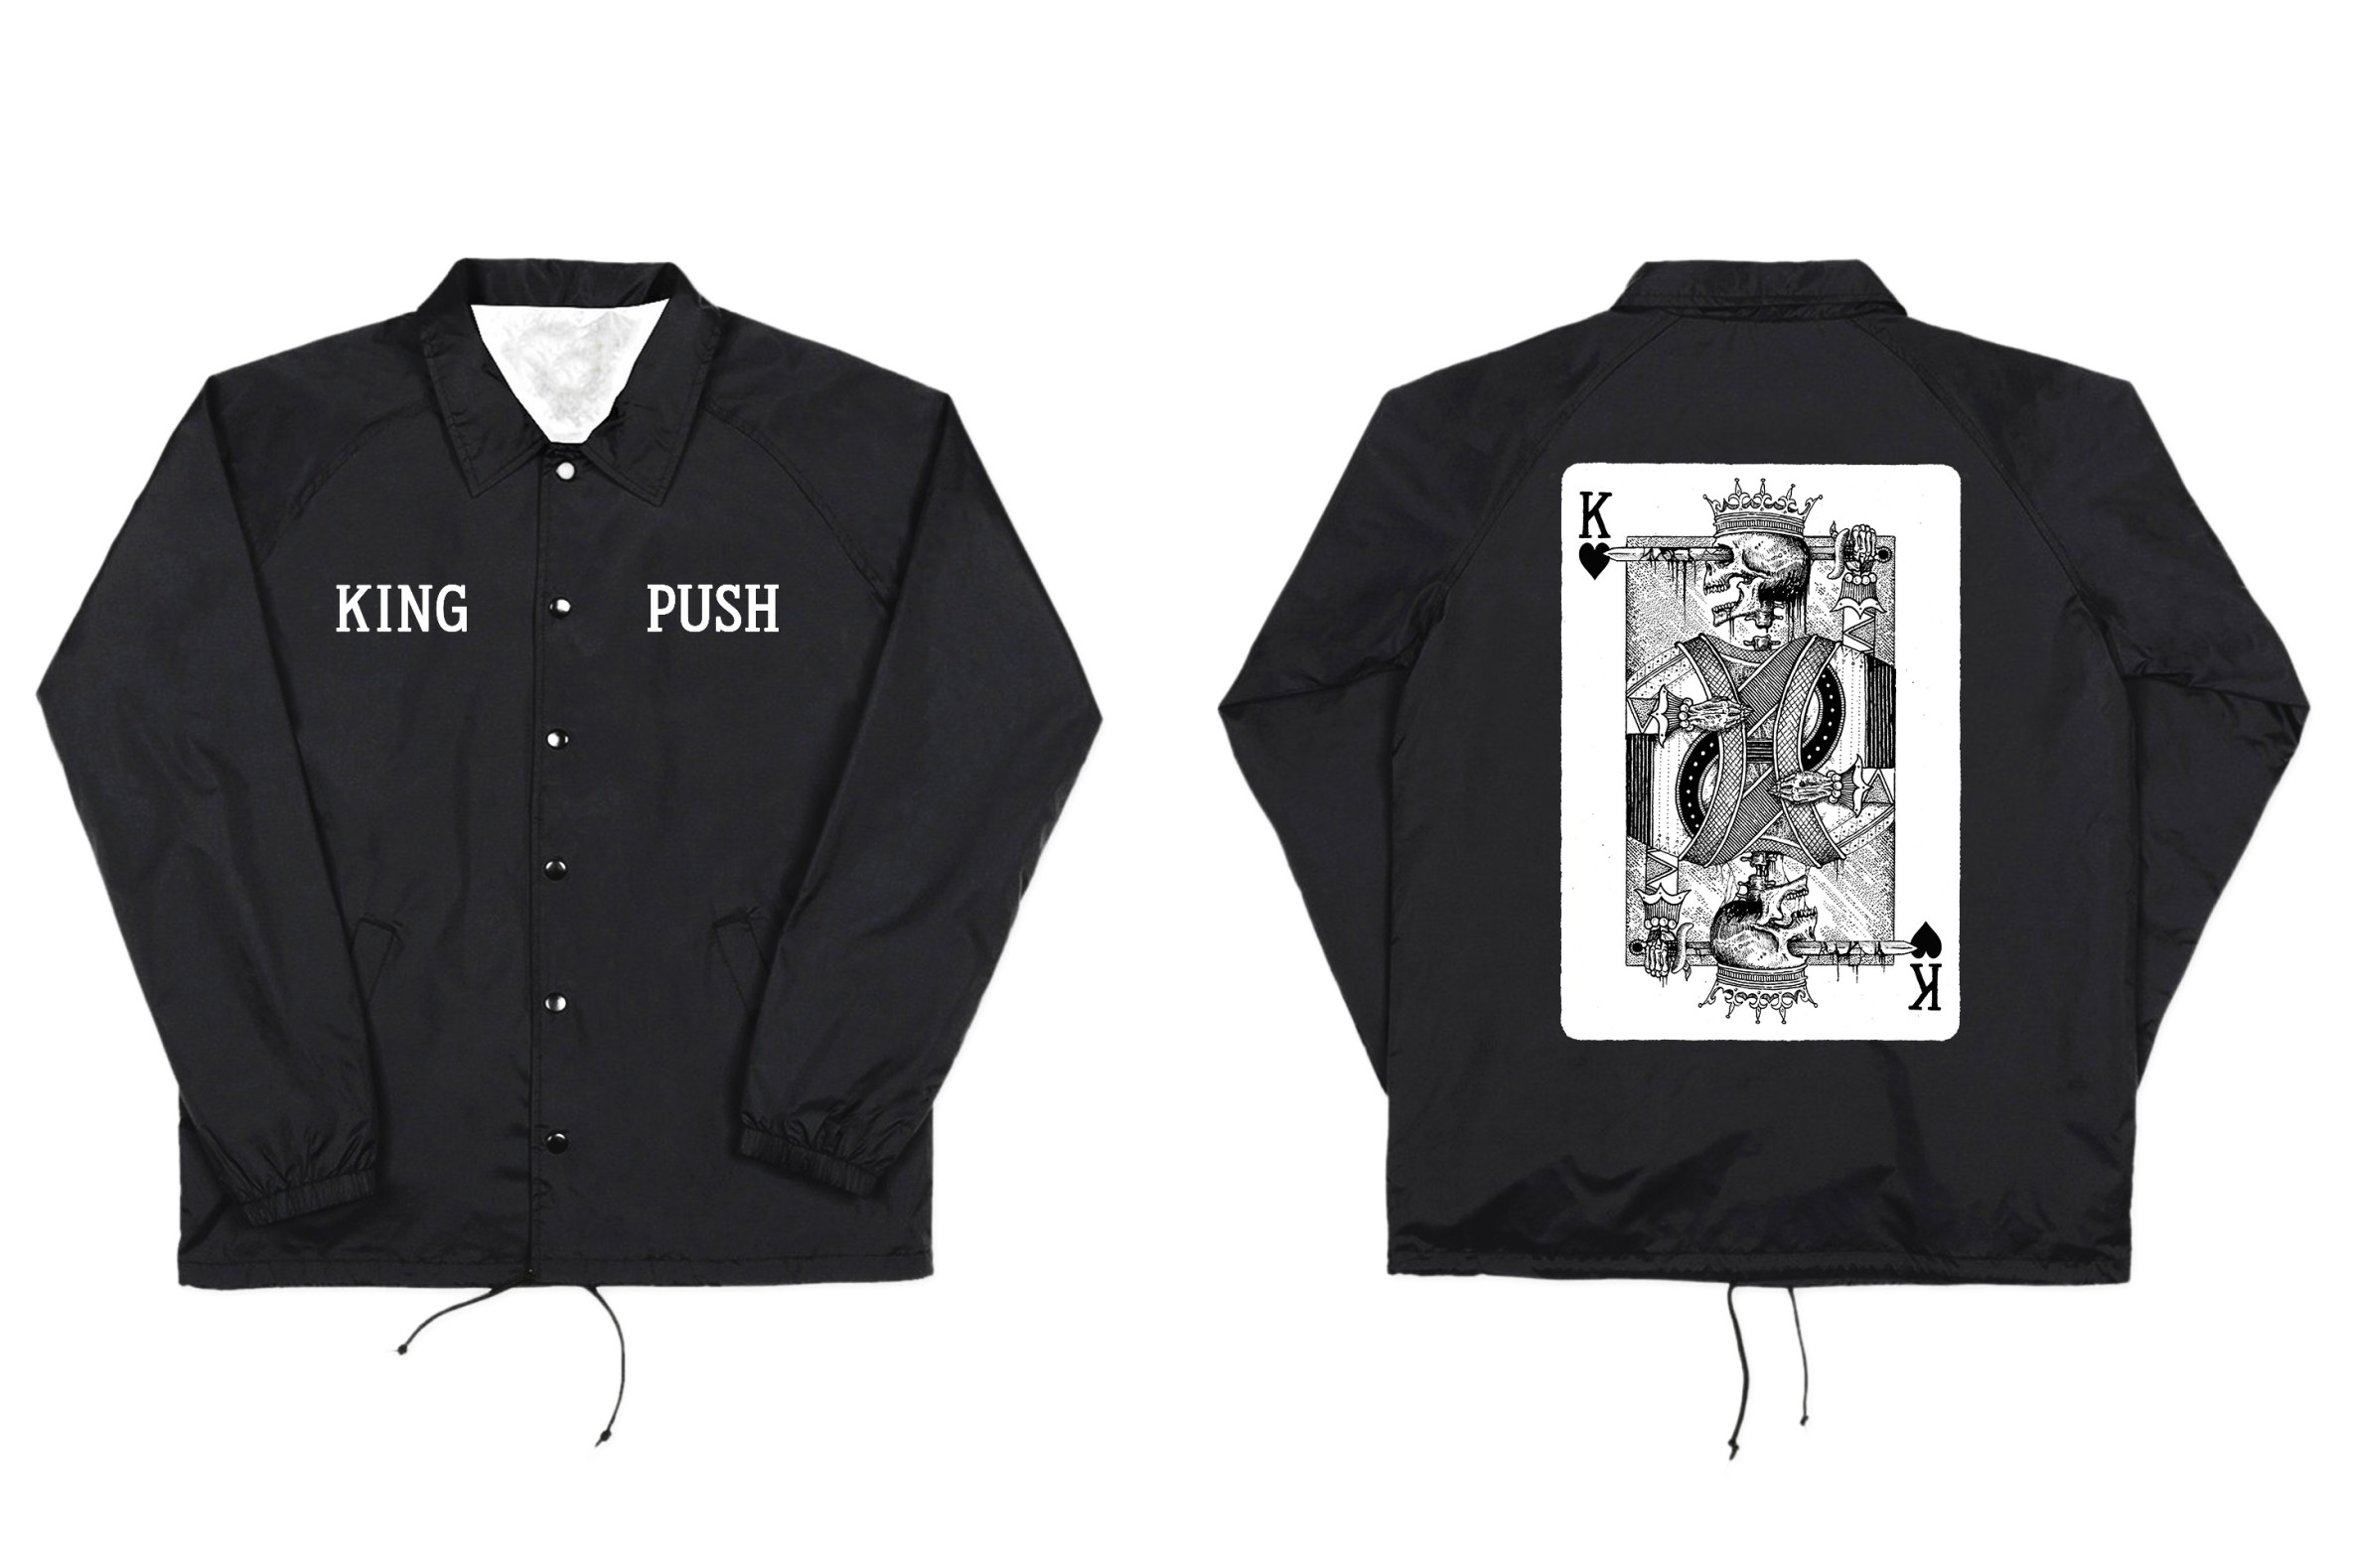 Pusha T 2016 Collection: Official Photos Revealed